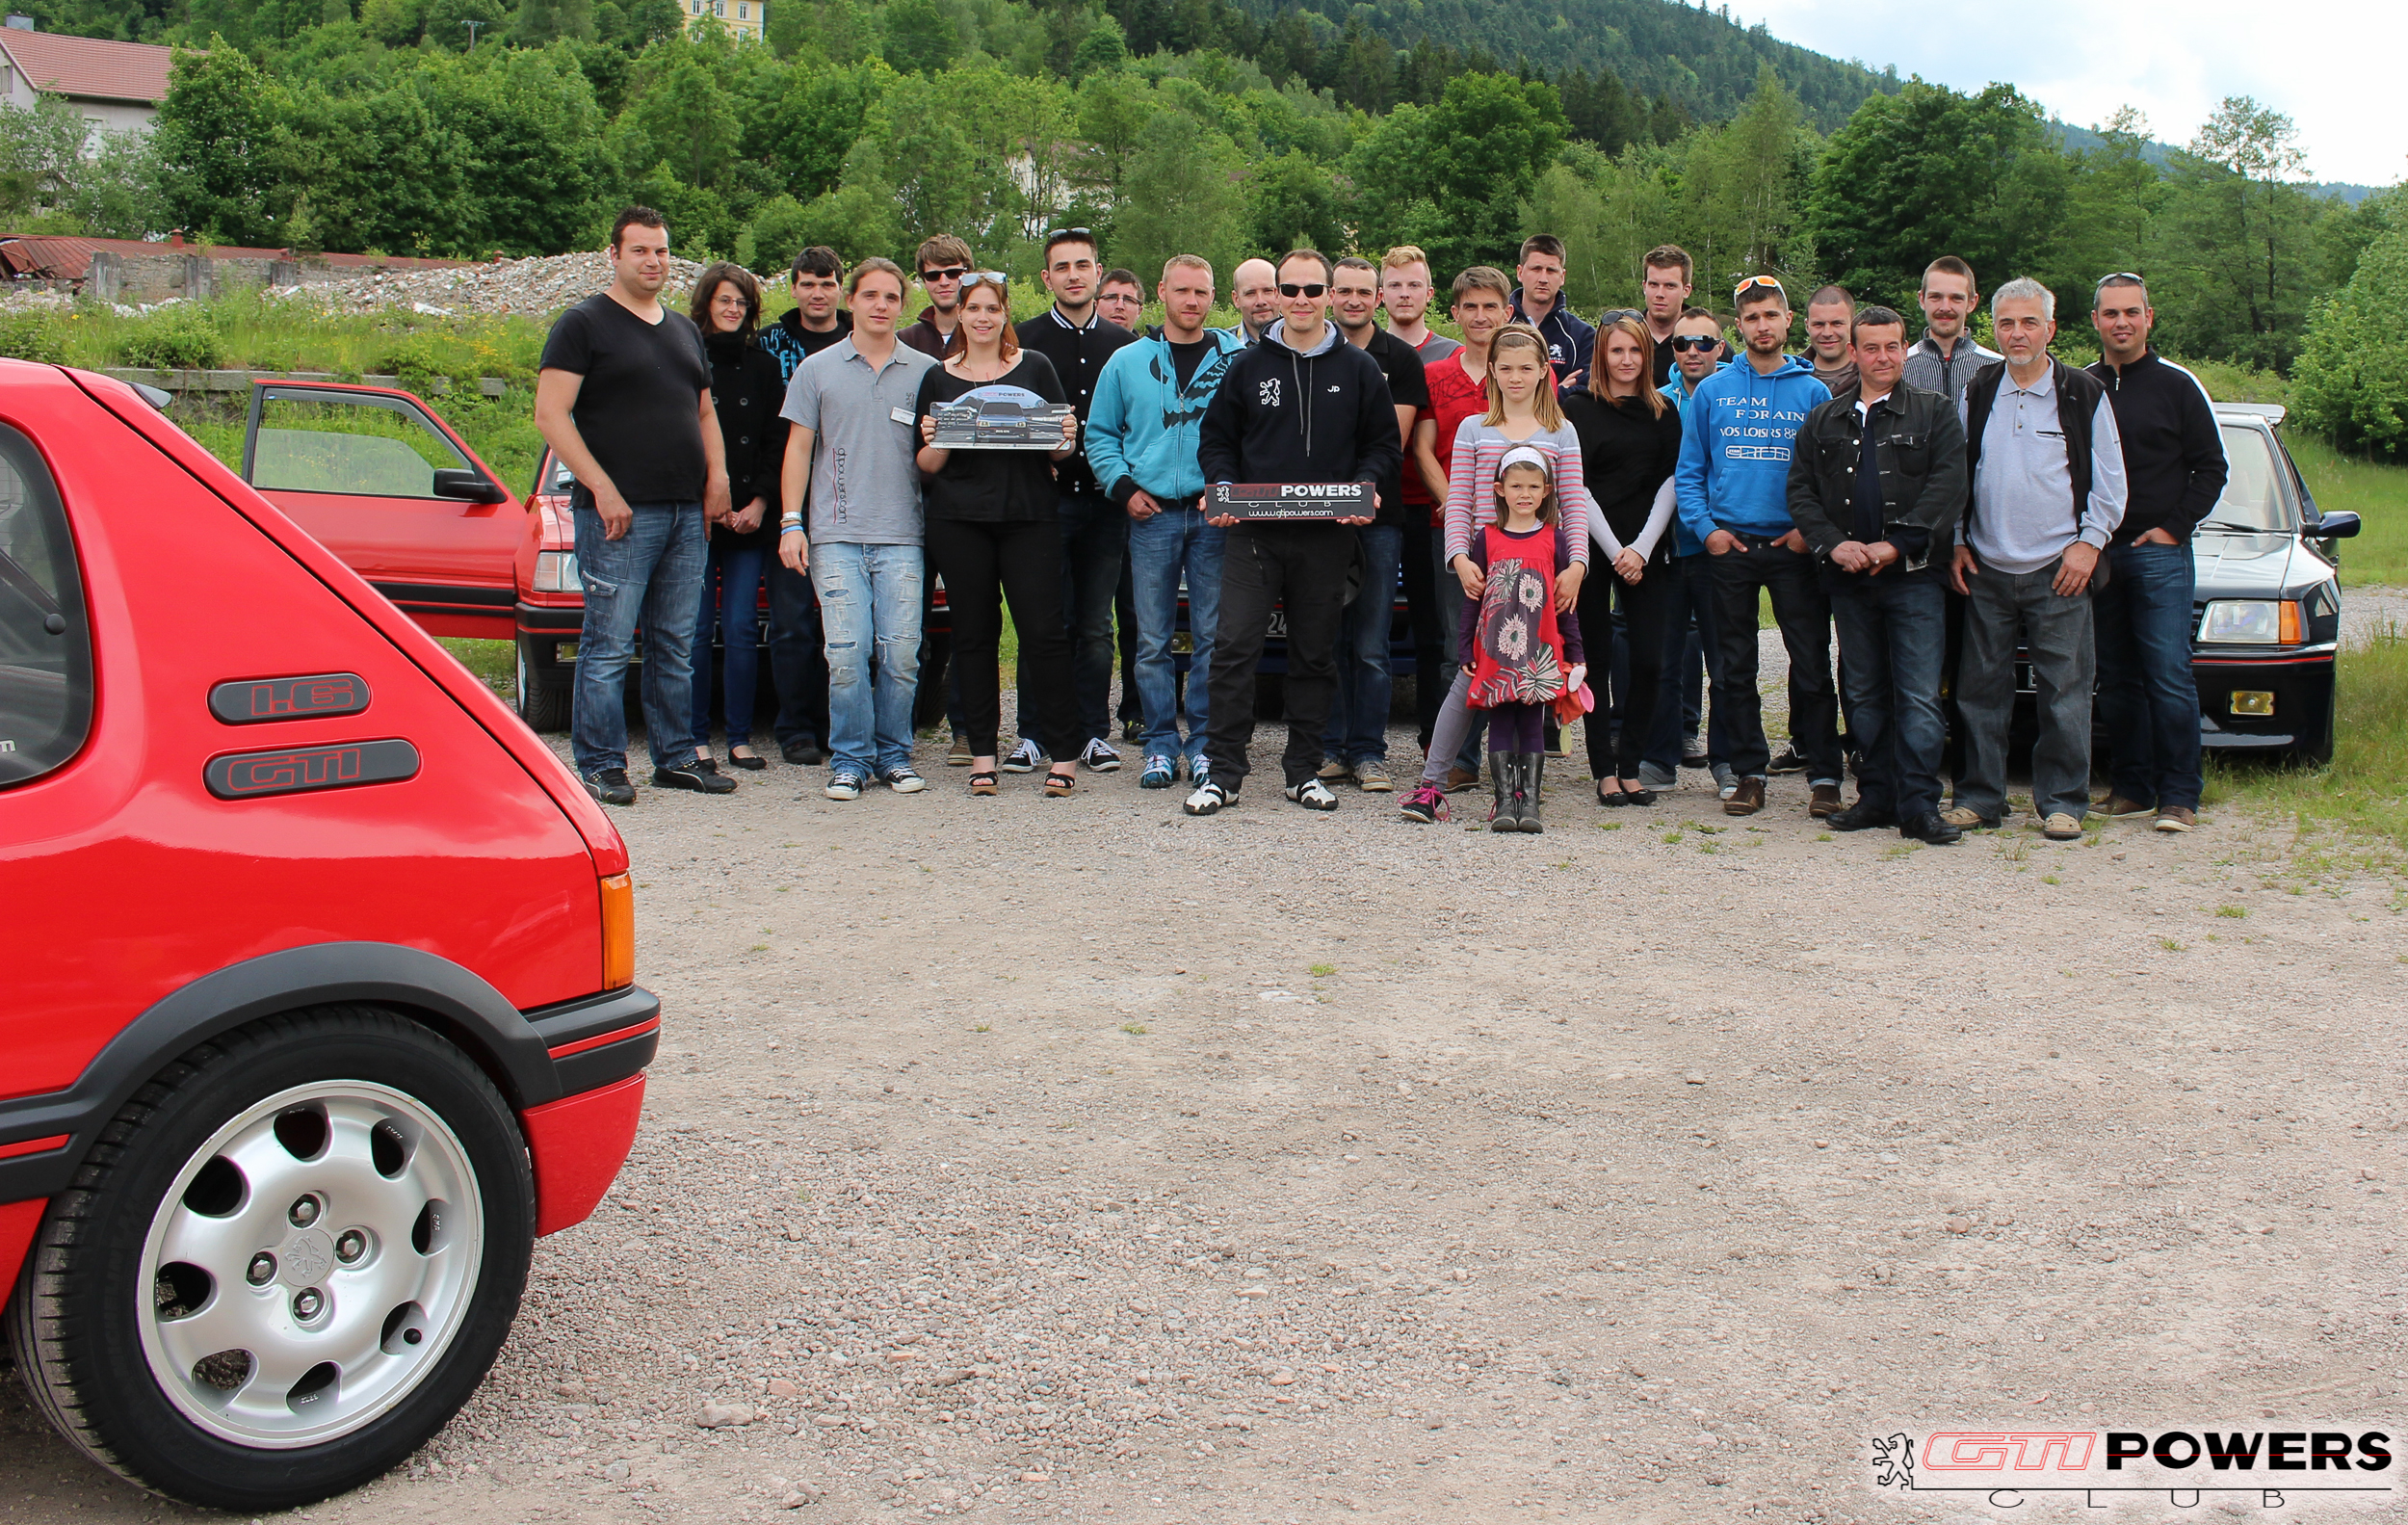 [GTiPowersDays] Alsace Vosges 2021 - 19, 20 juin 2021 Peugeot-205-GTI-Powers-GTiPowers-Day-Vosges-2015-70